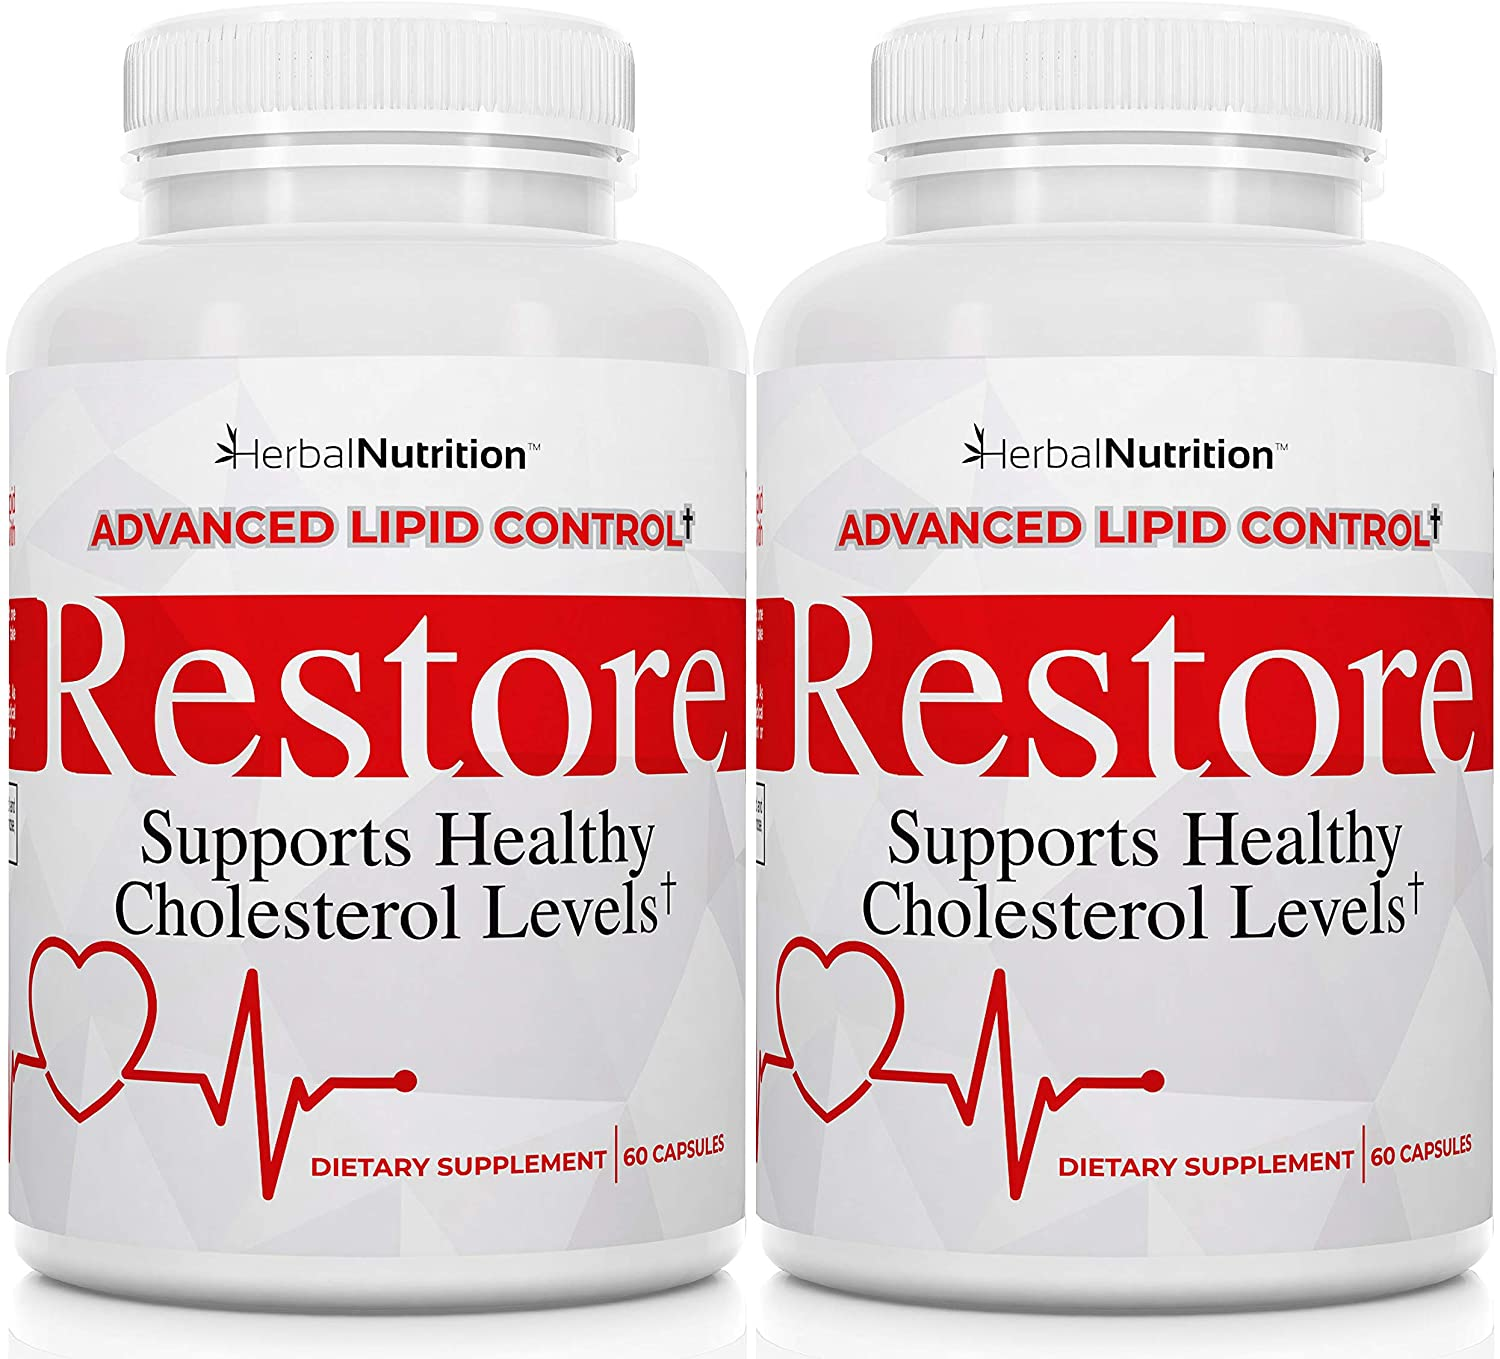 Restore - Best Cholesterol Lowering Supplement, Red Yeast Rice, Grape Seed Extract, Folic Acid for Advanced Lipid Control, All-Natural Bio-Actives, Lower Cholesterol in 90 Days Guaranteed Two Bottle